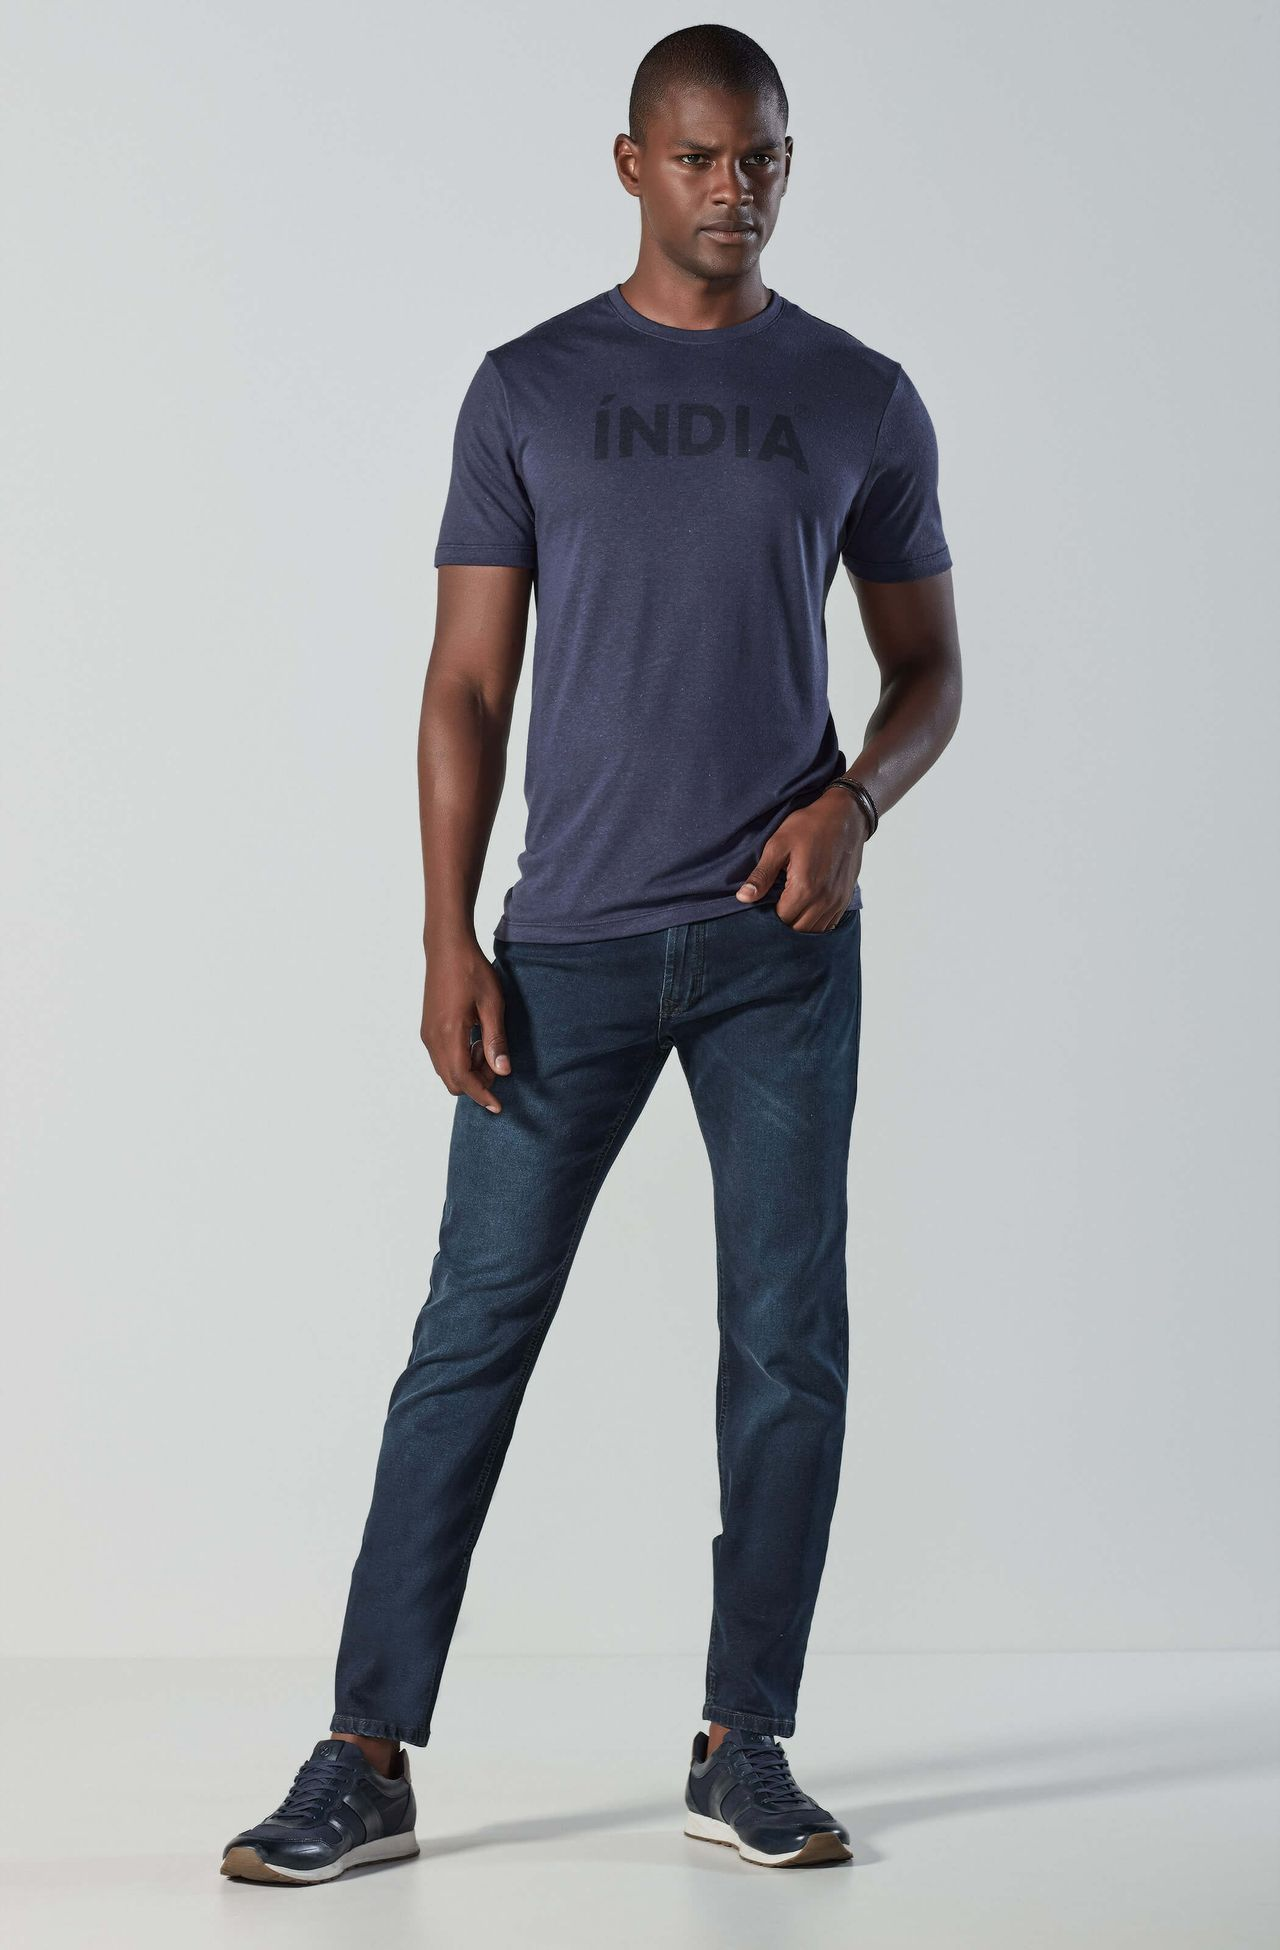 8353CCZ00050_590_2-TSHIRT-MC-INDIA